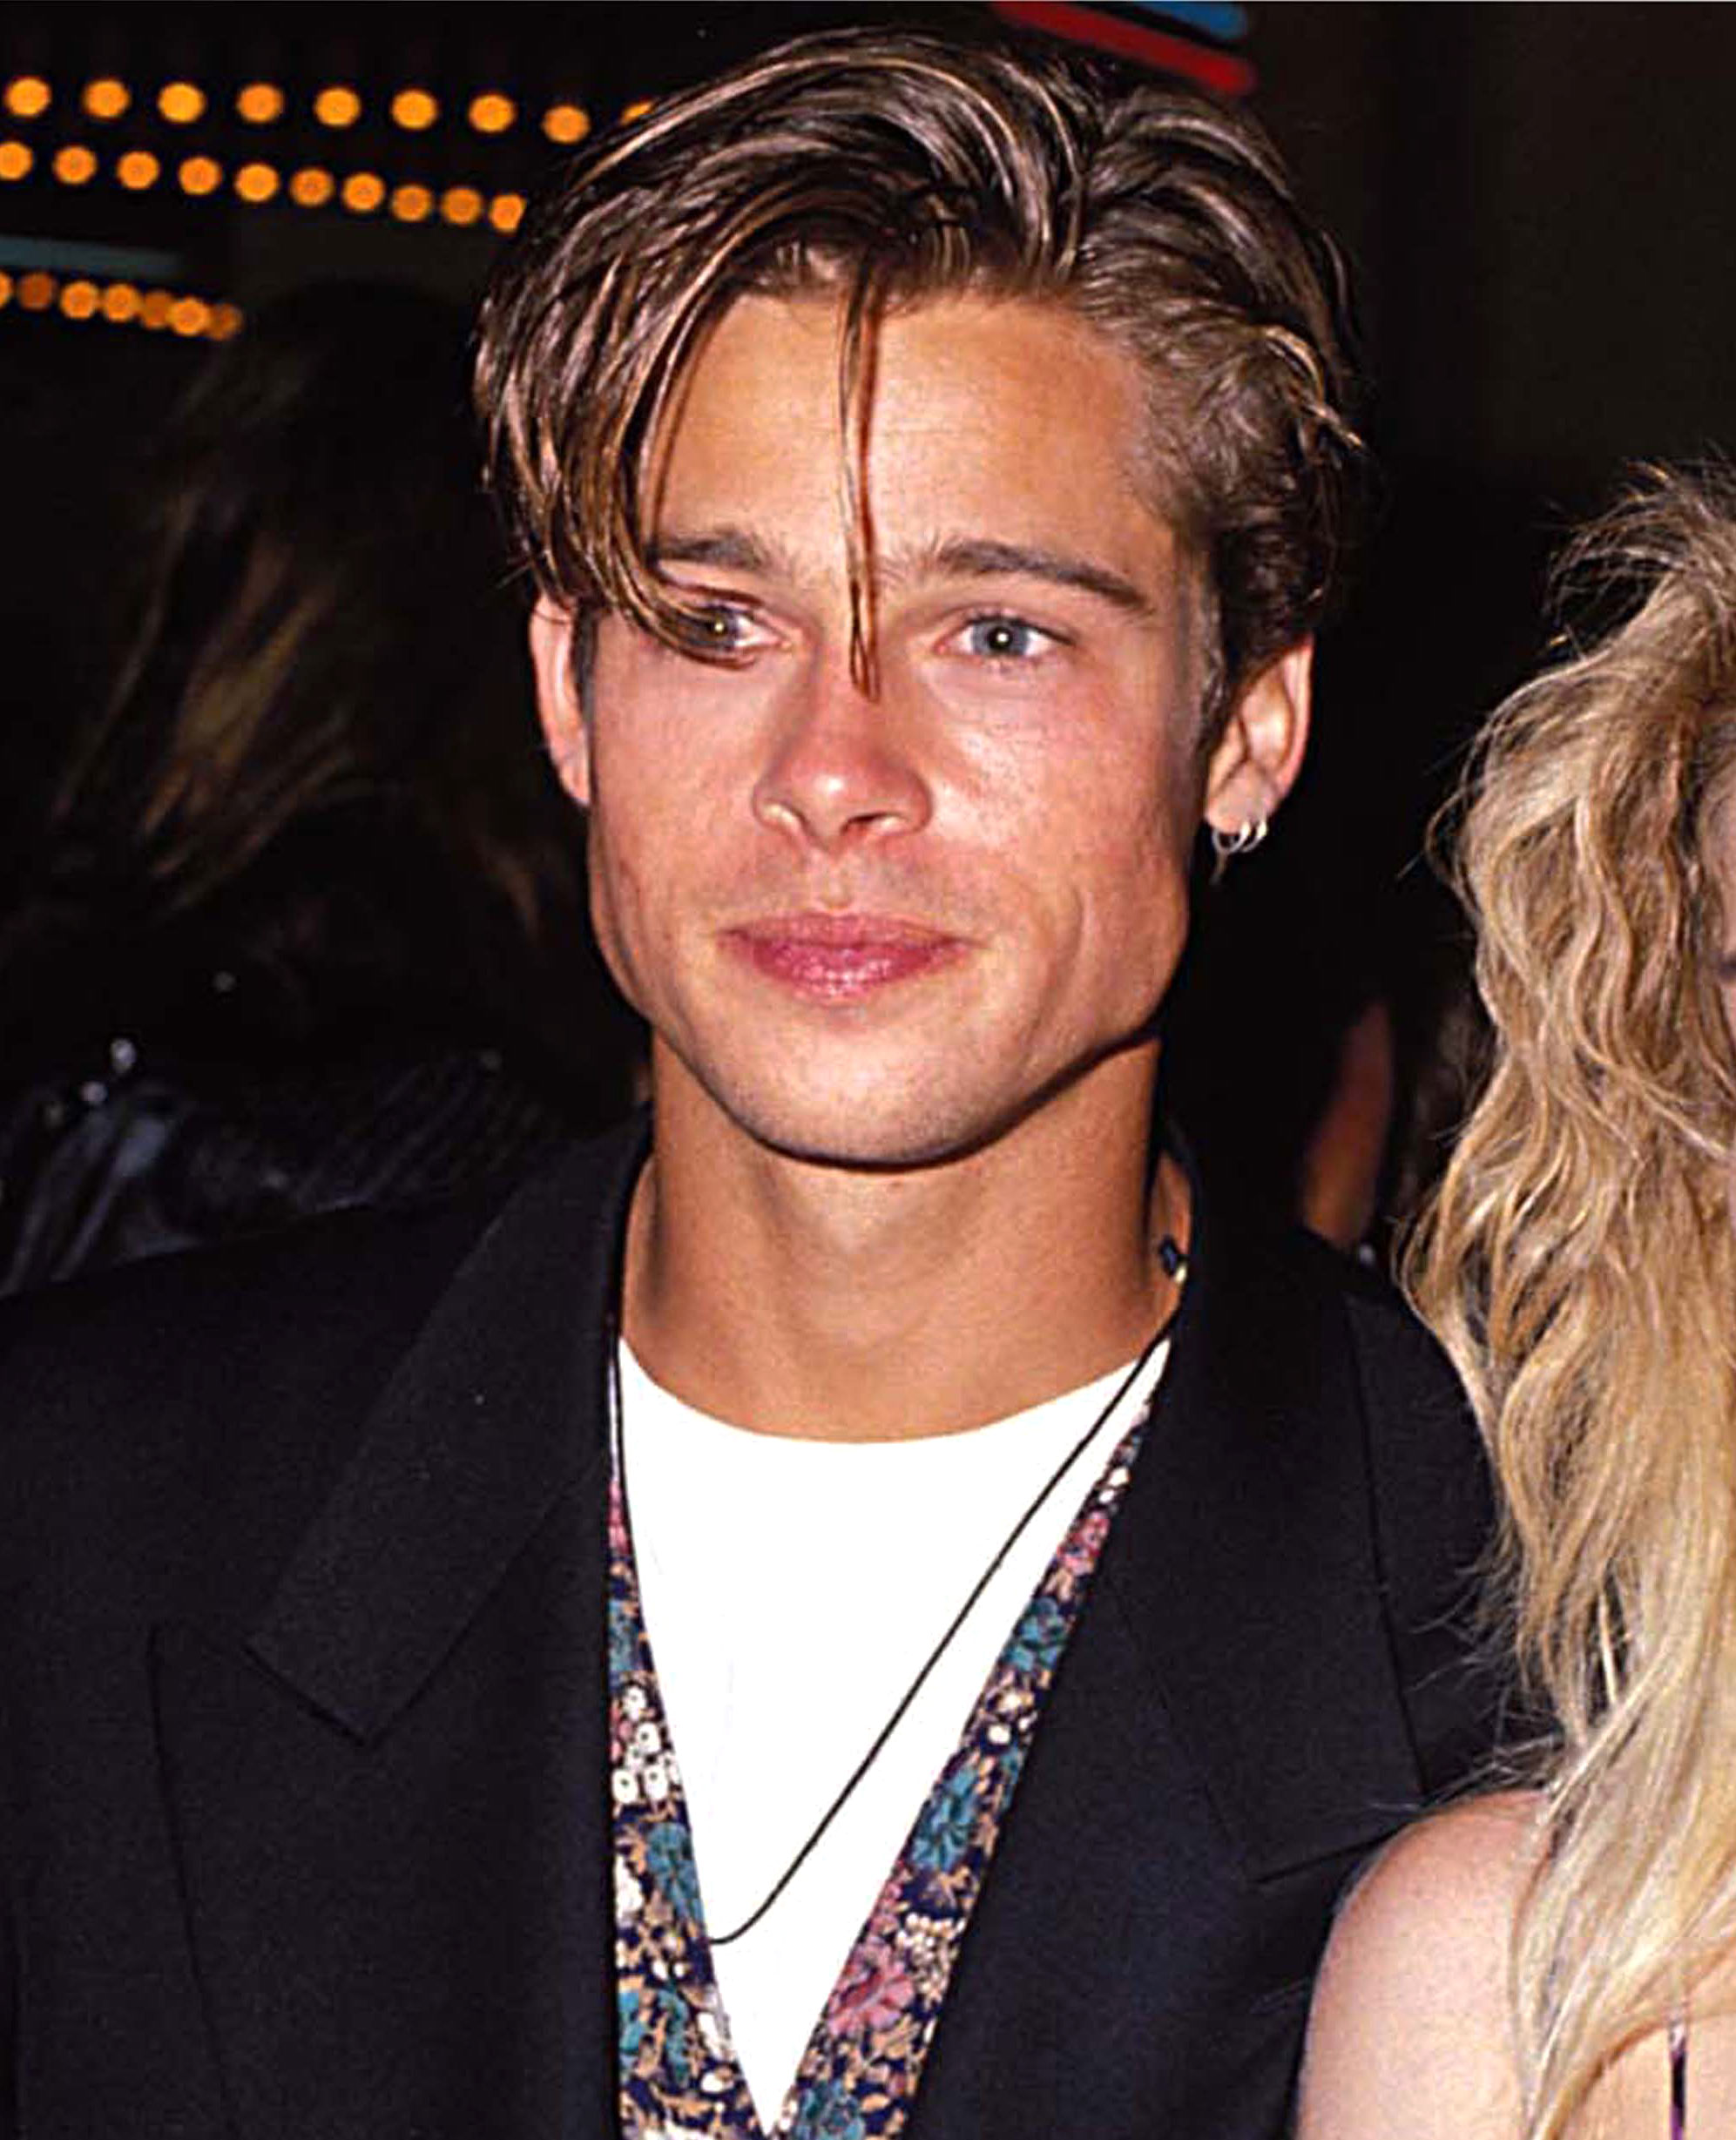 brad-pitt-hair-90s-mtv - The fresh-faced star turned up at the 1990 MTV Video Music Awards with a glossy bowl cut that he managed to make look cool.